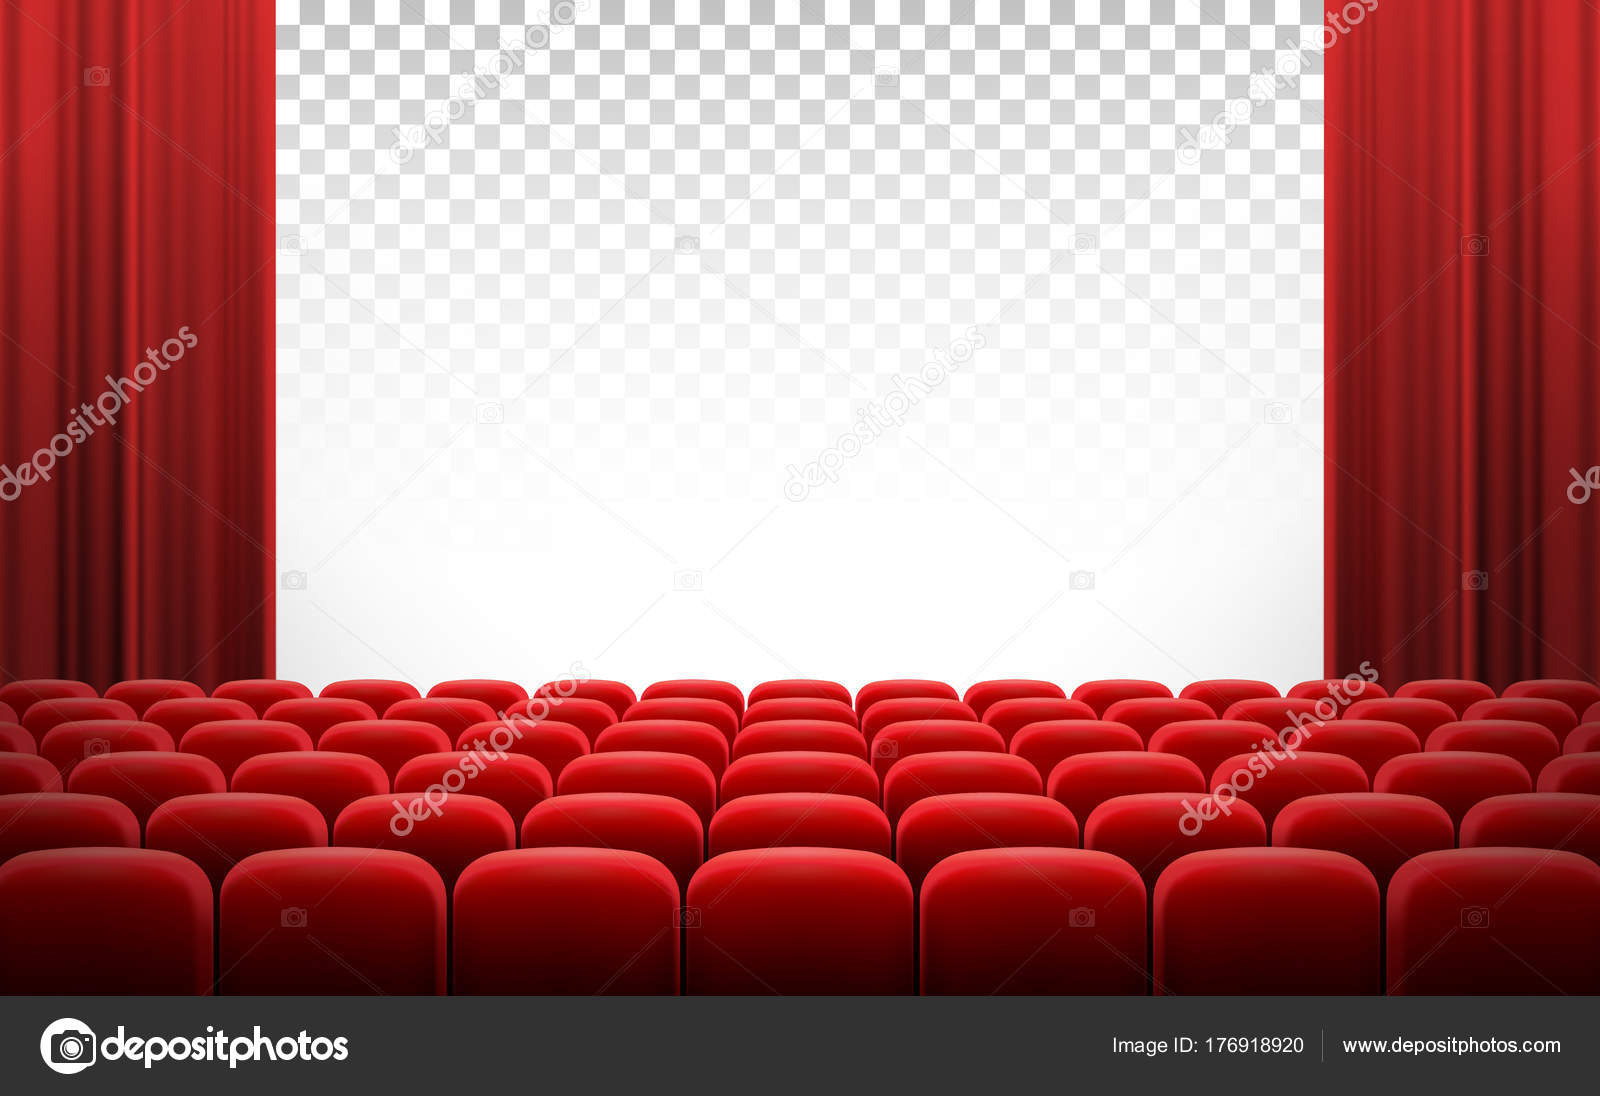 White Transparent Cinema Movie Theatre Screen With Red Curtains And Rows Of Chairs Realistic Vector Illustration Background